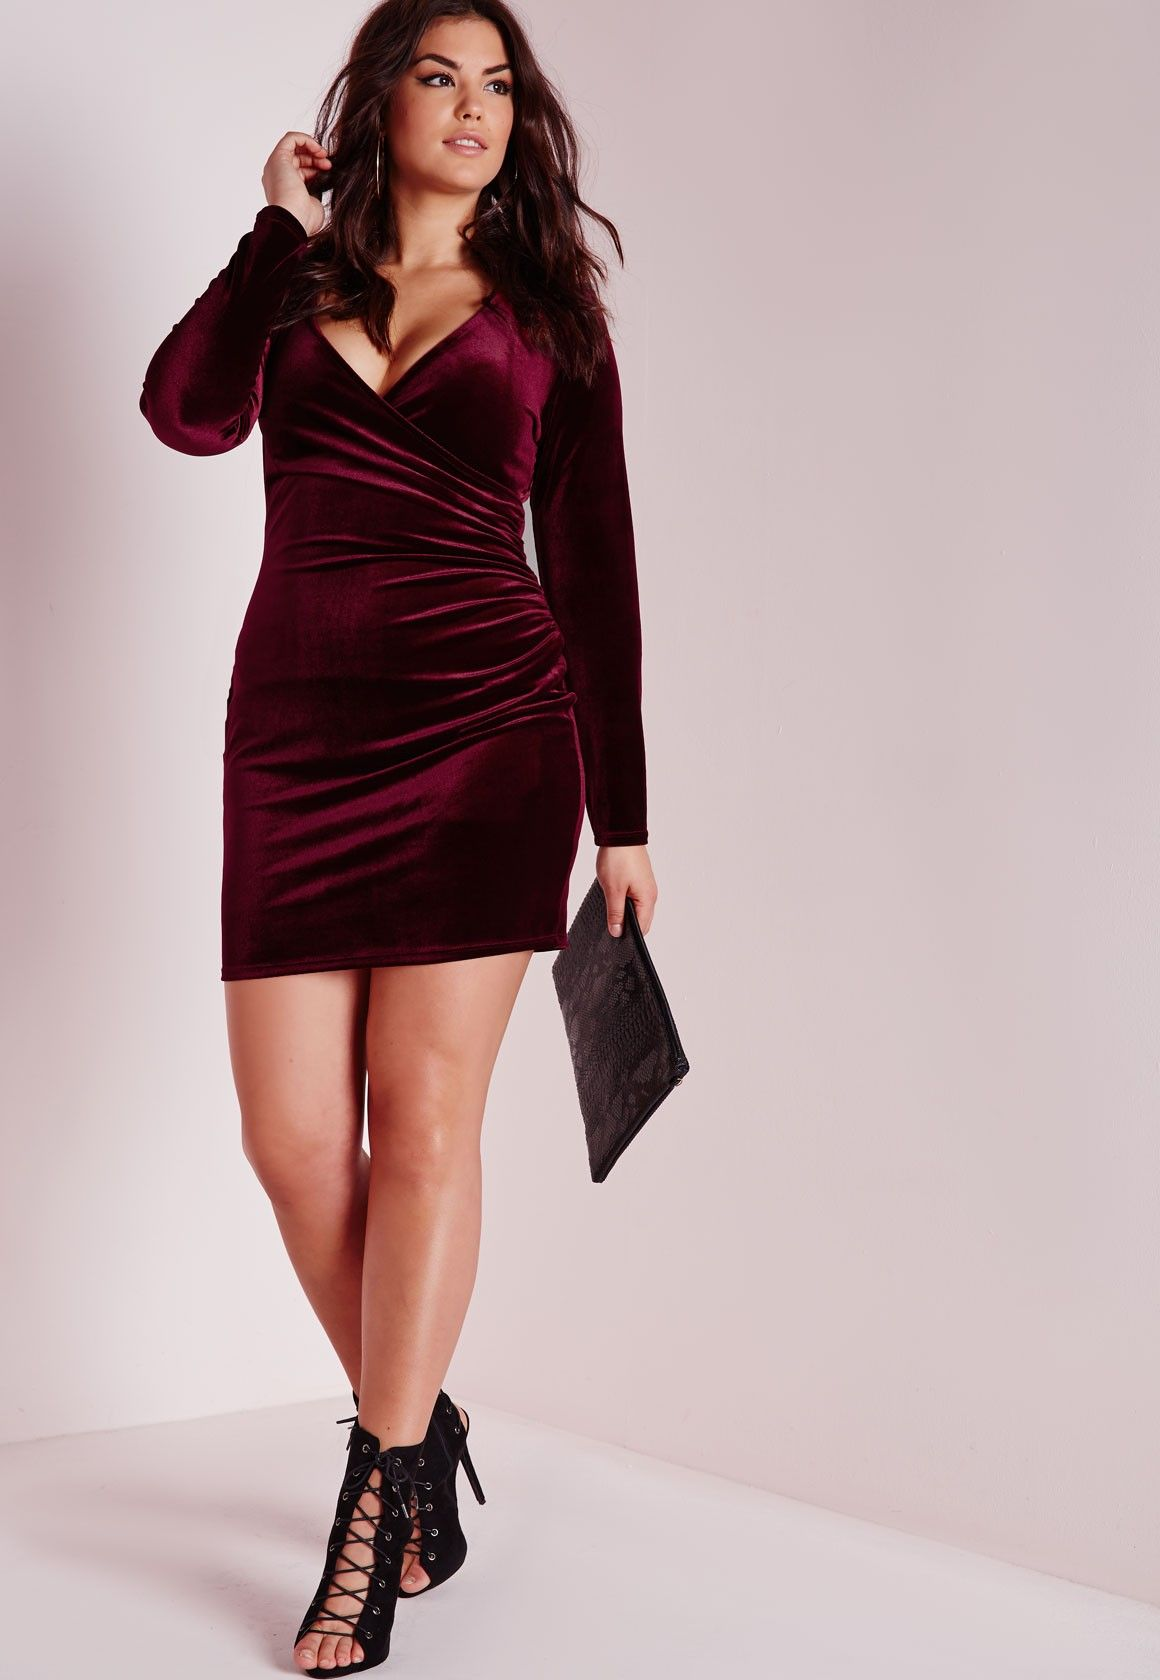 51baebc6eb87 Missguided - Plus Size Velvet Wrap Front Dress Burgundy